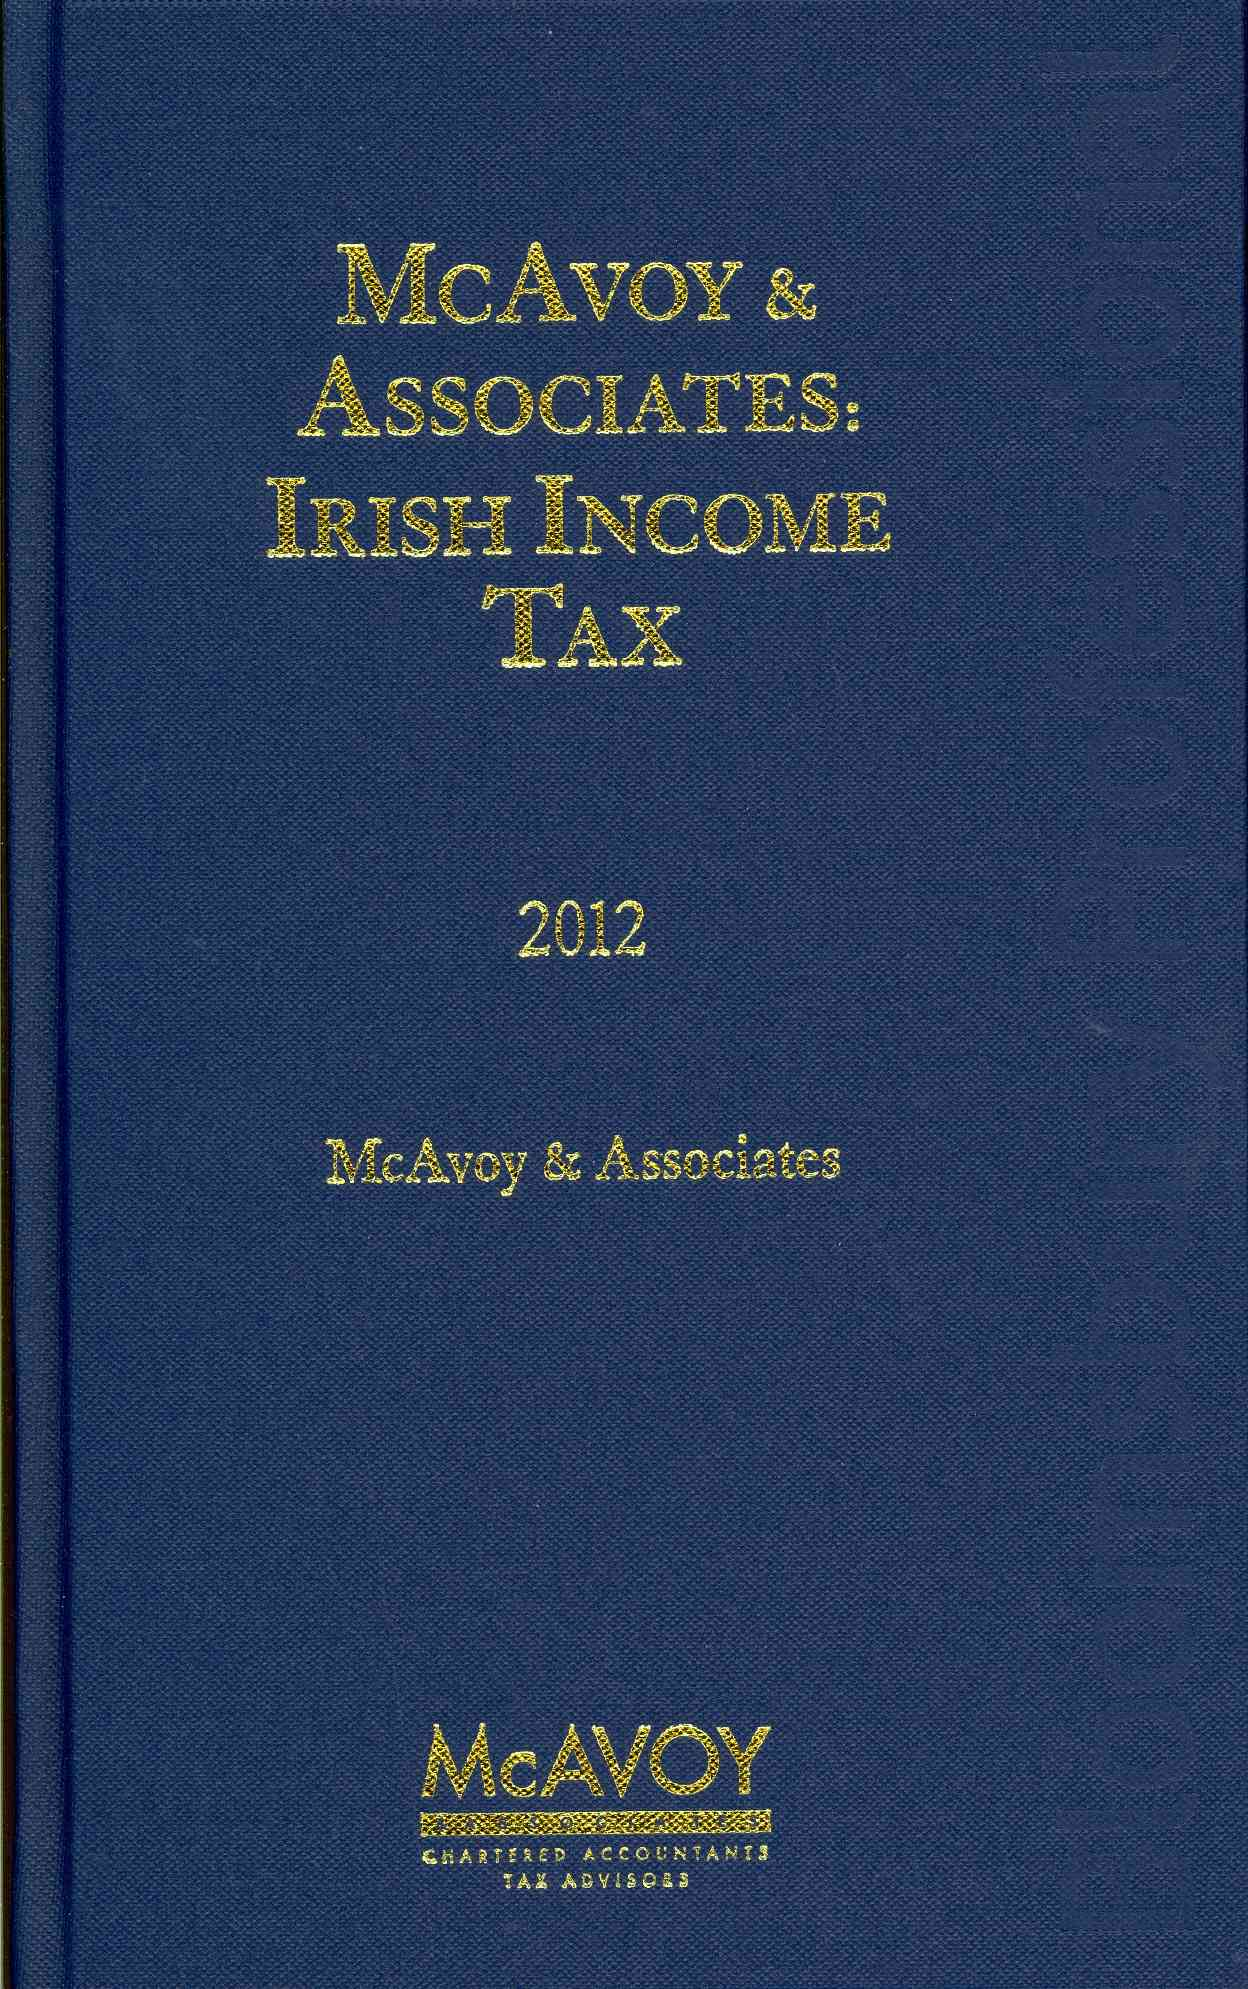 Irish Income Tax 2012 (Hardcover)